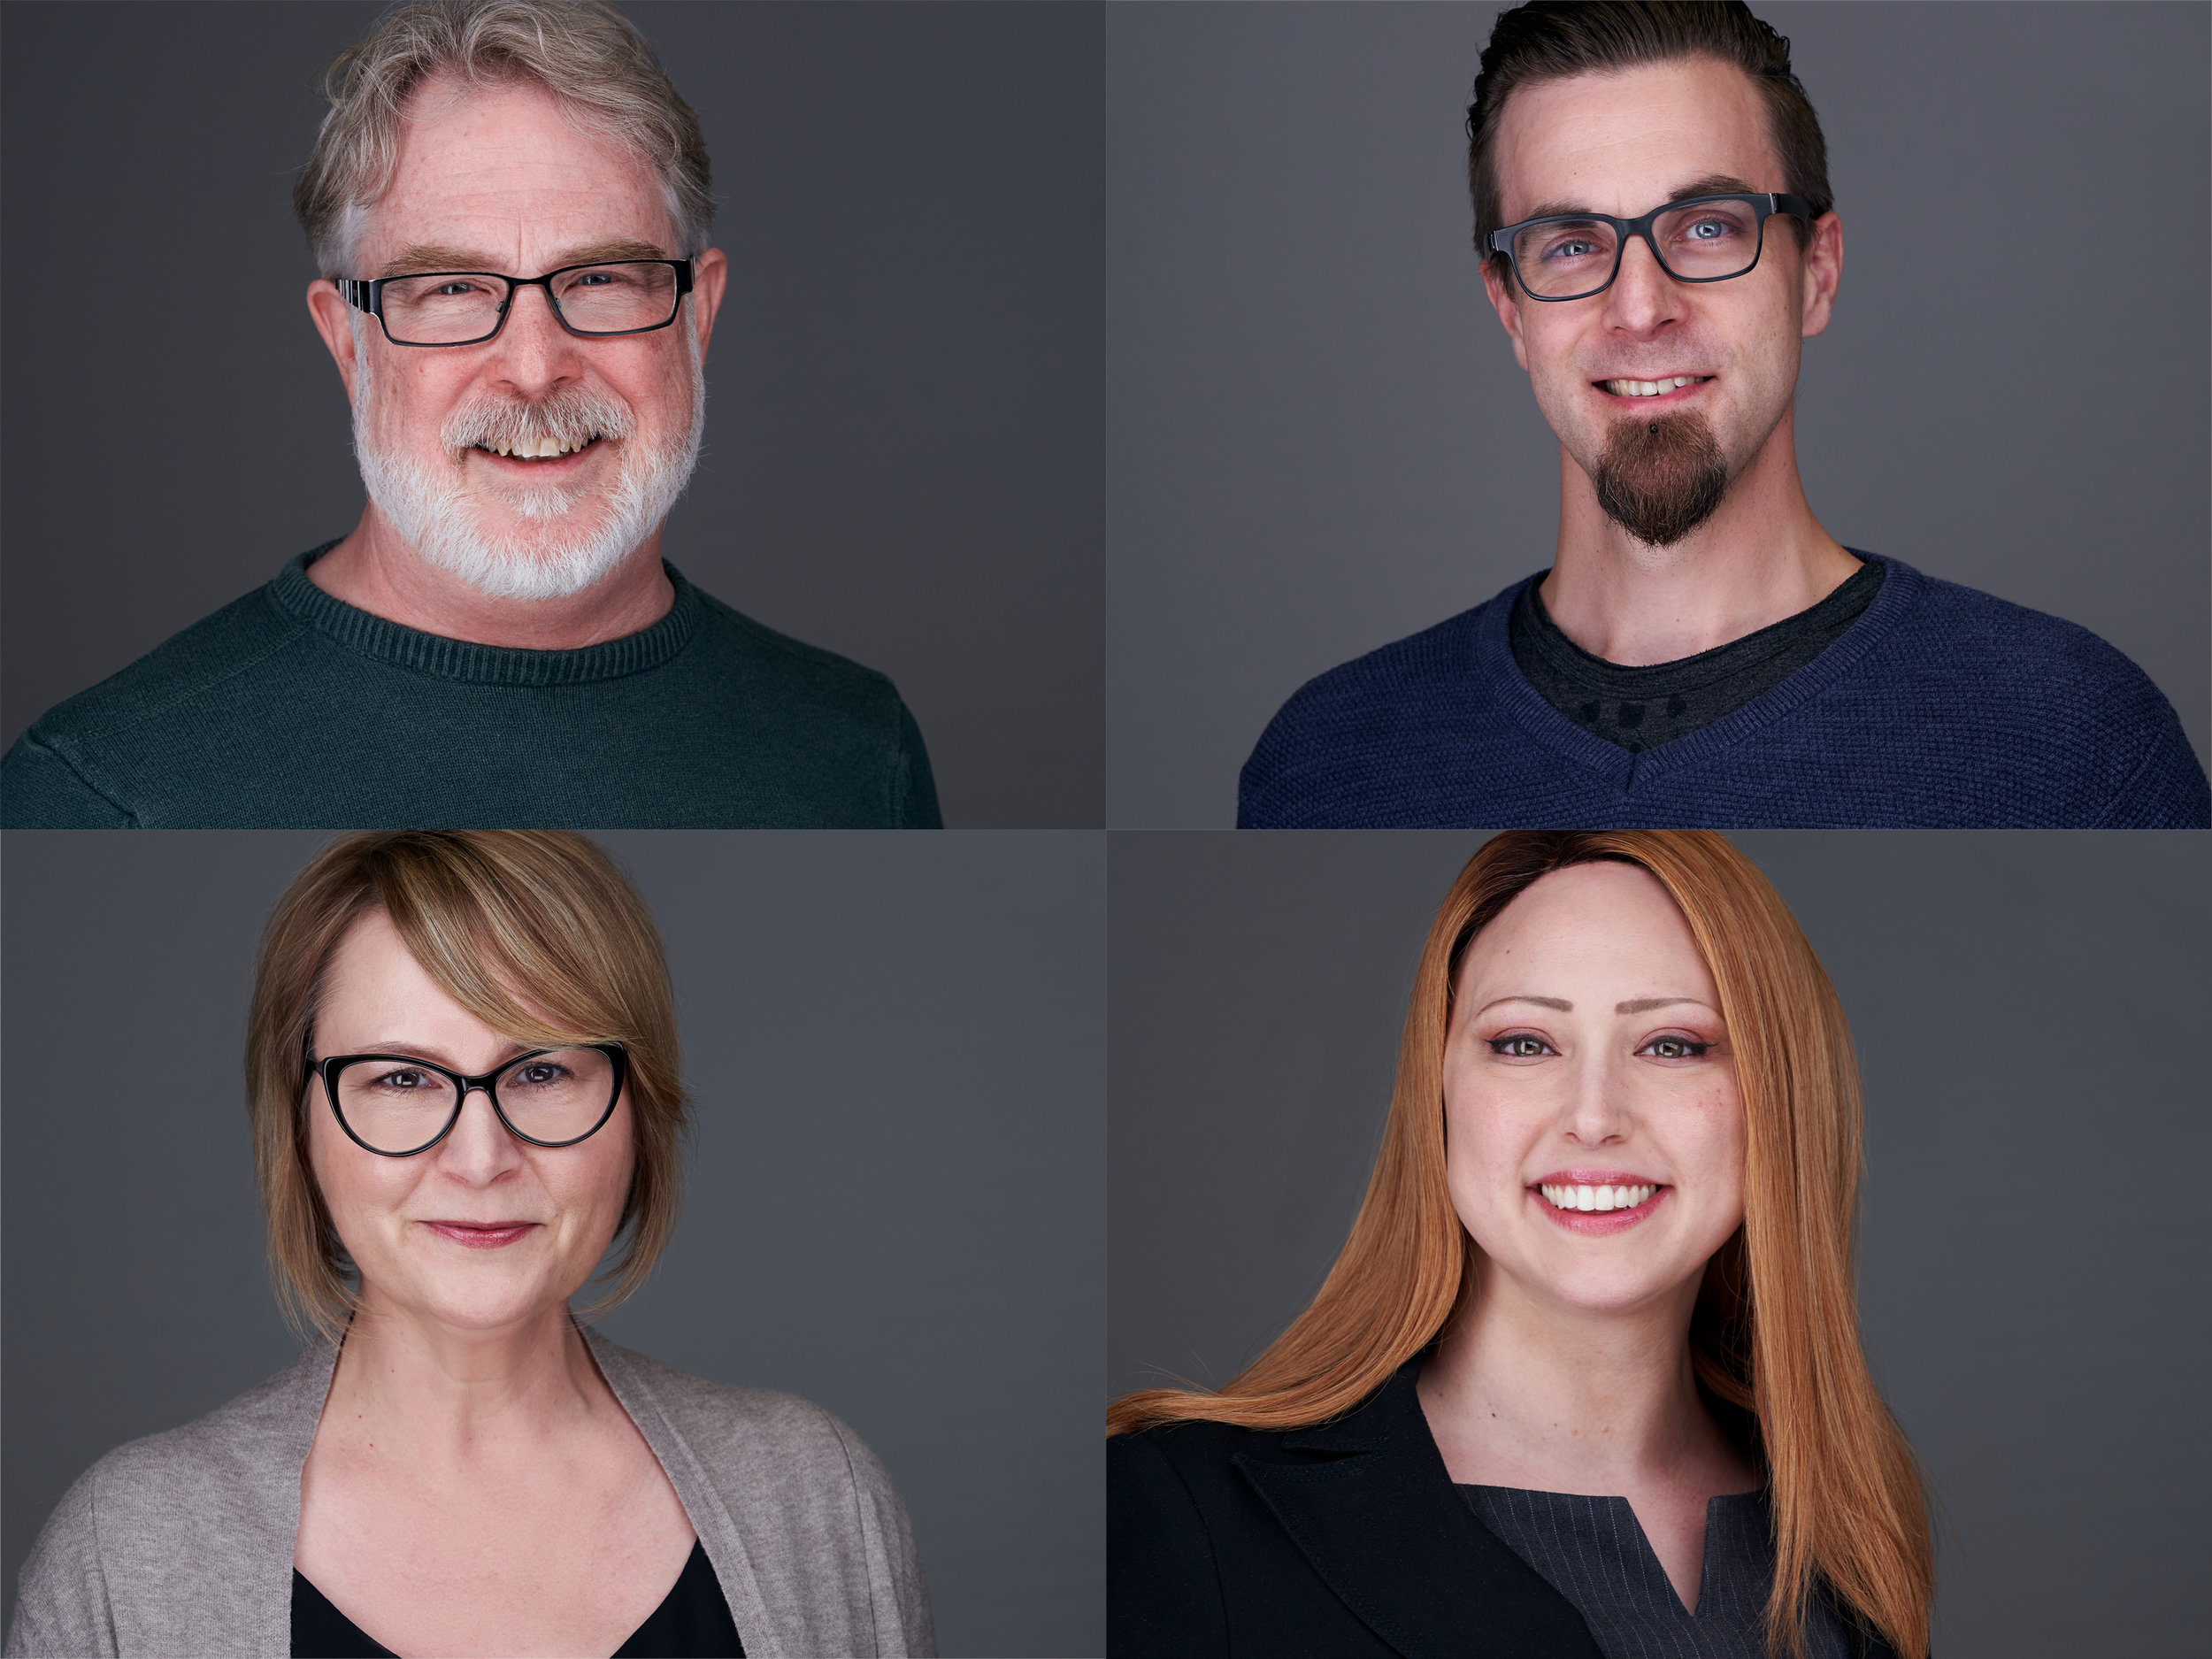 Office headshots on location grid image